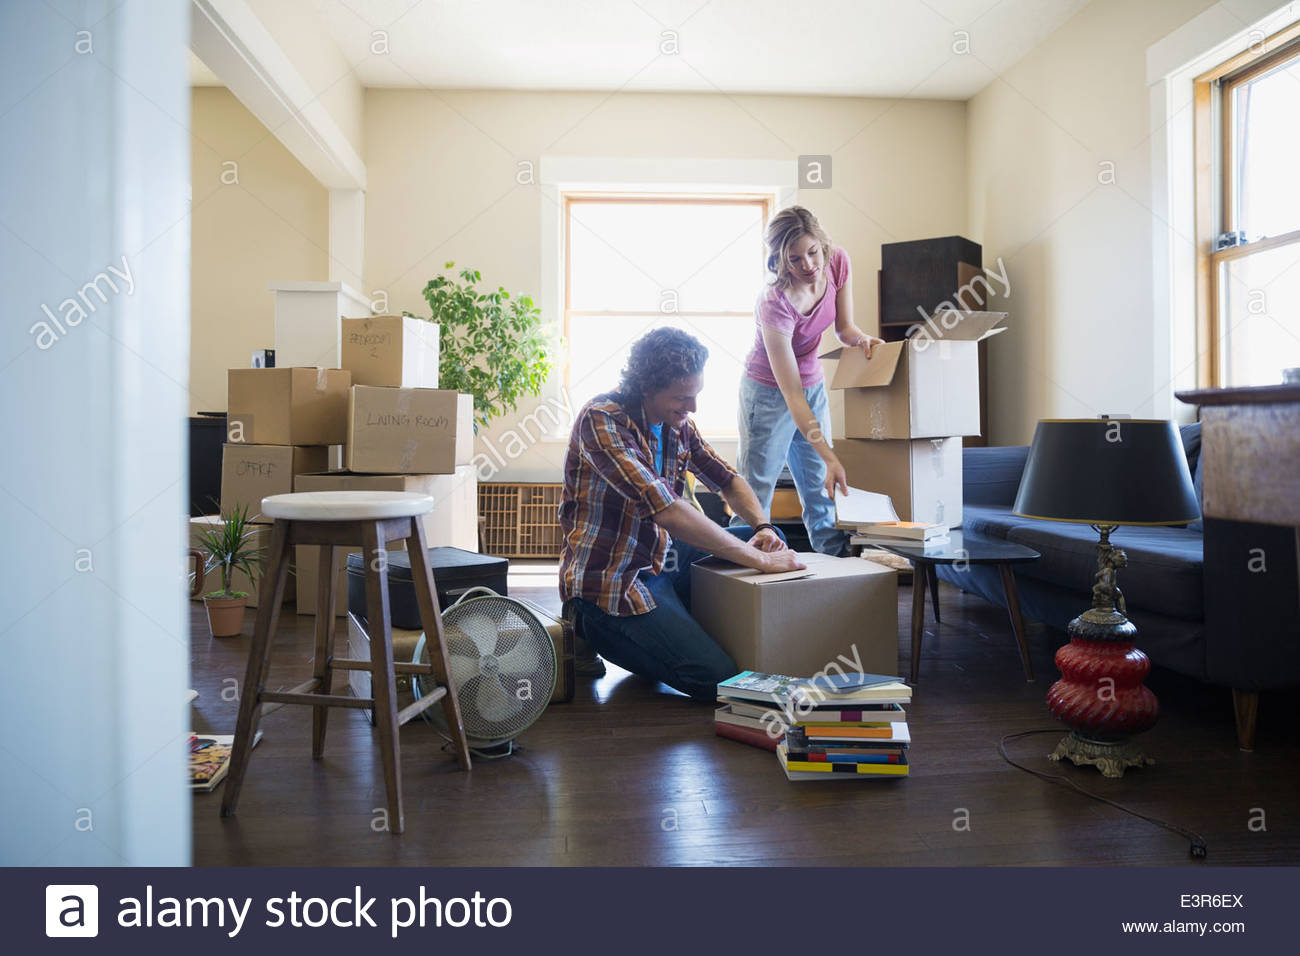 Couple packing moving boxes in living room - Stock Image